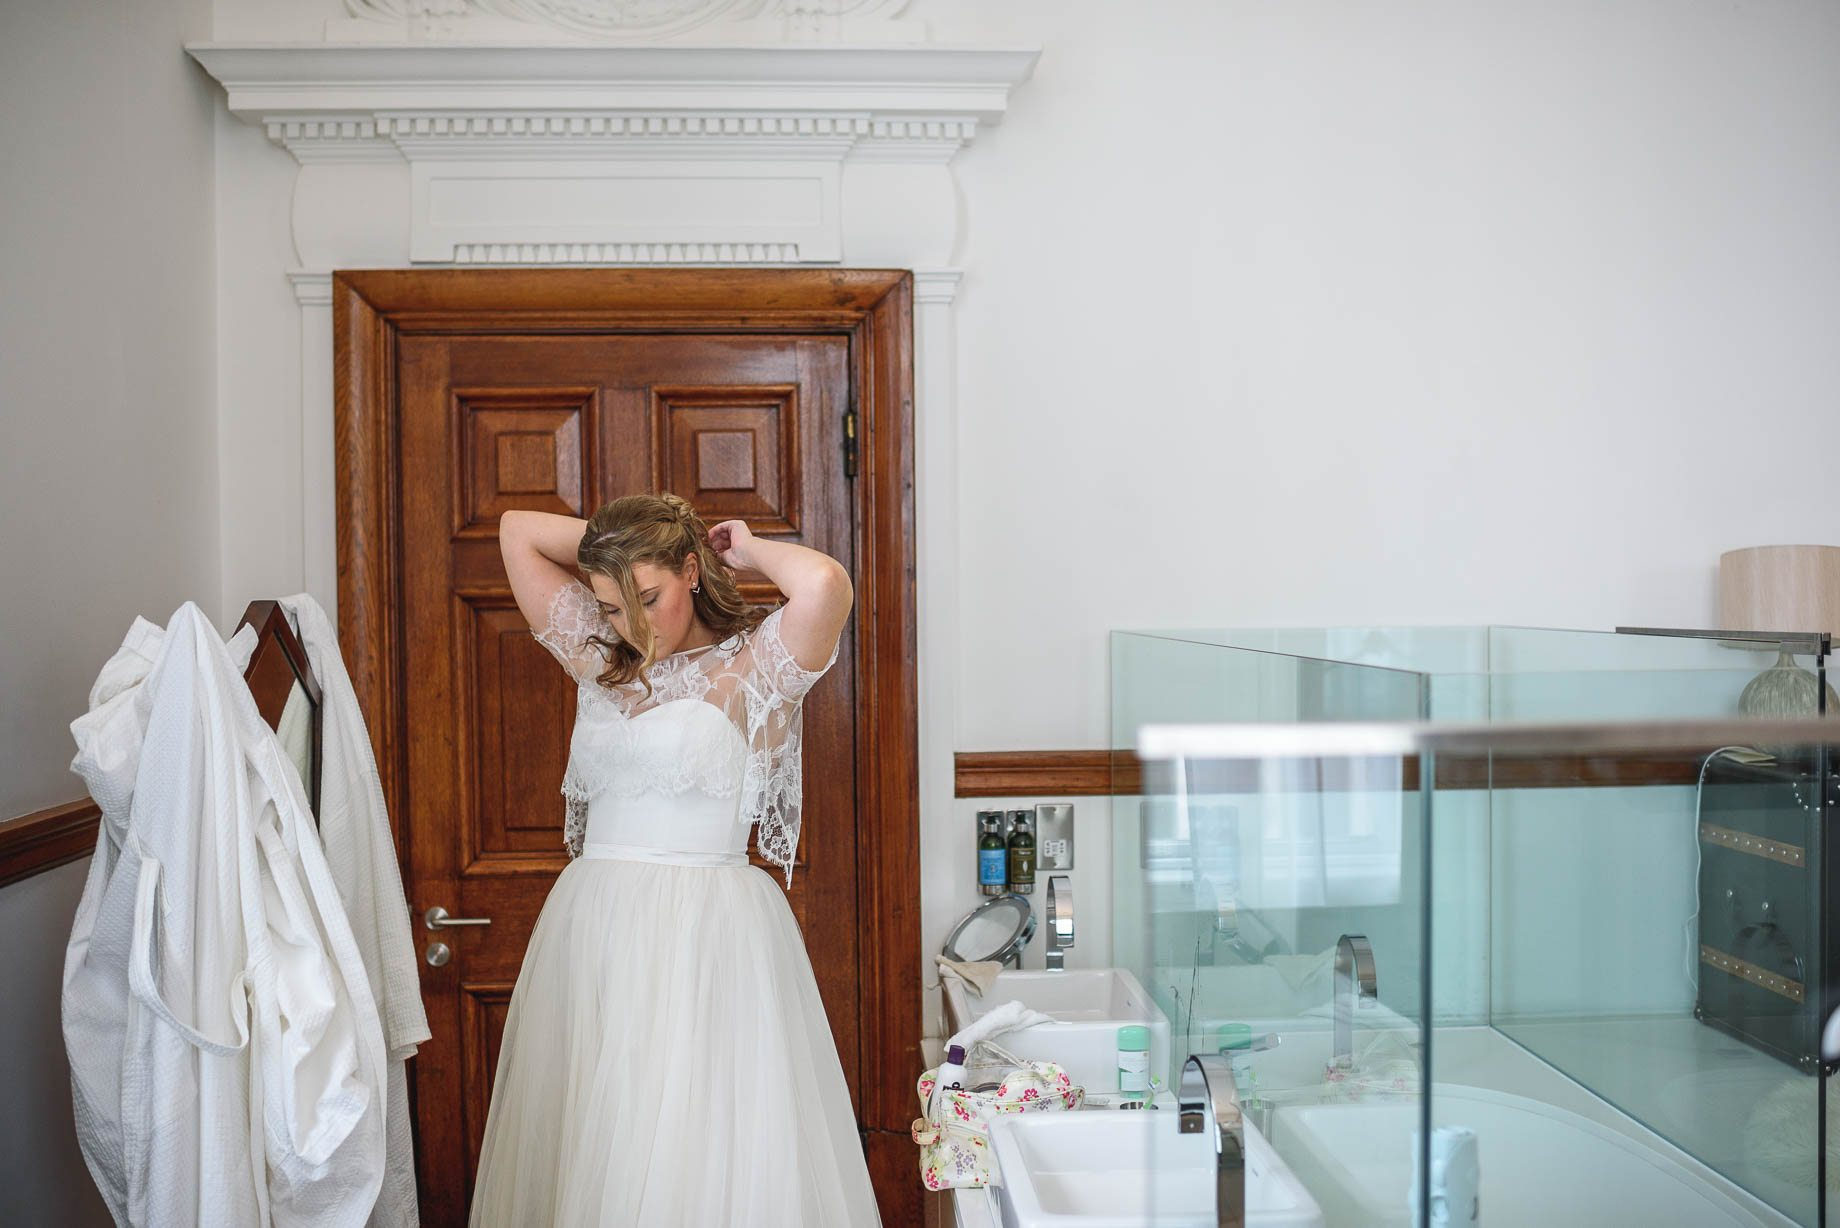 London Wedding Photography - Guy Collier Photography - LJ + Russell (41 of 155)